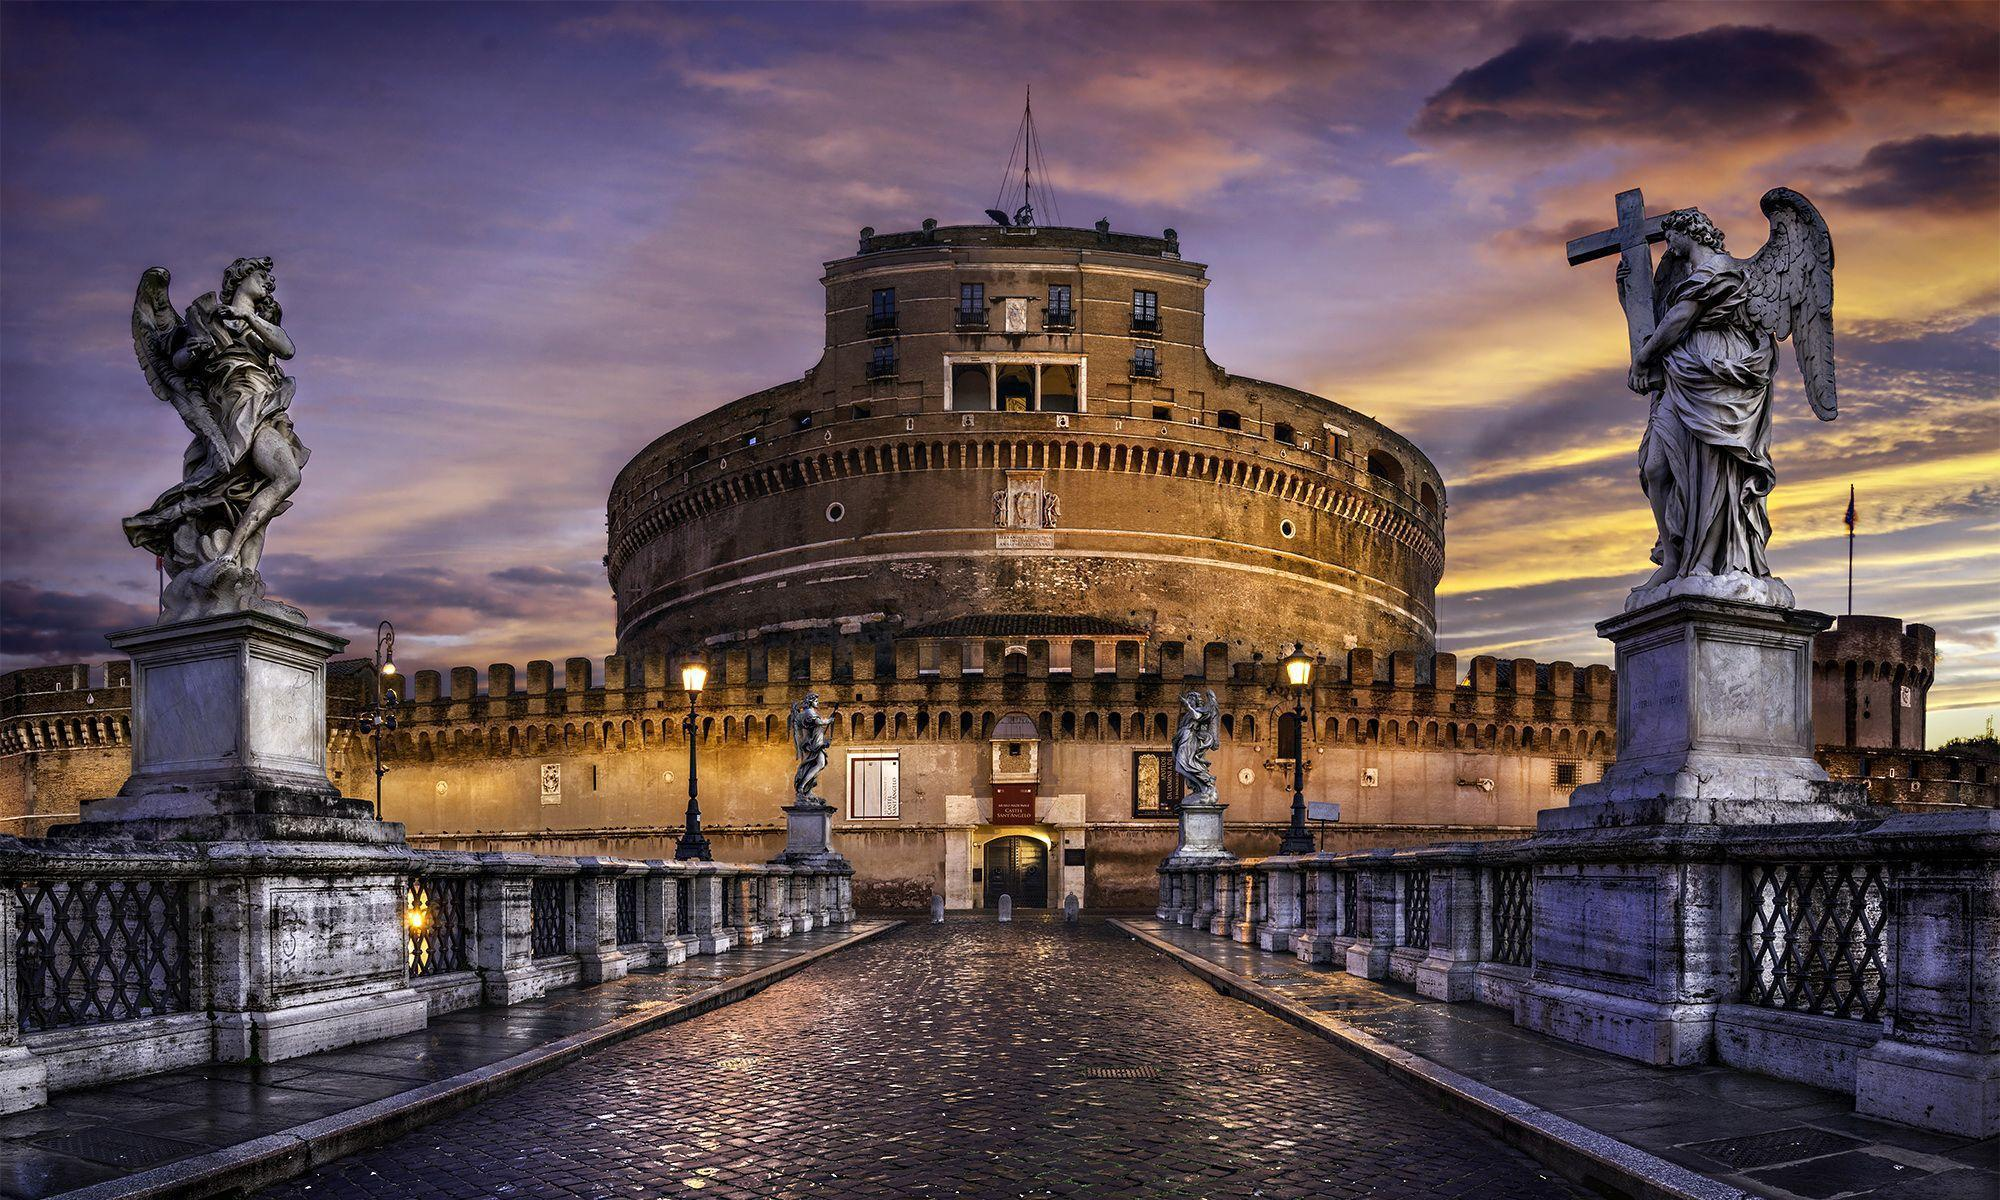 Castel Sant Angelo HD Wallpapers For Desktop in High Quality